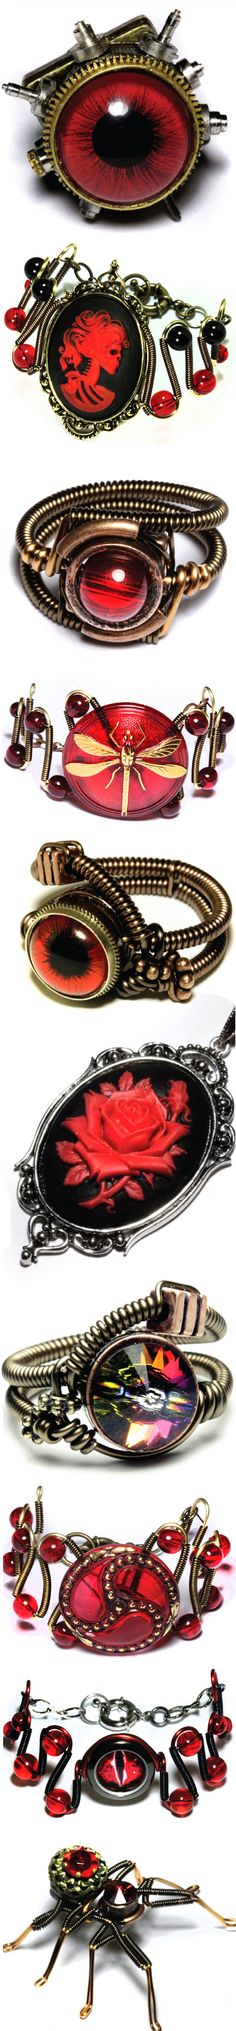 Steampunk Jewelry by CatherinetteRings : http://www.etsy.com/shop/CatherinetteRings